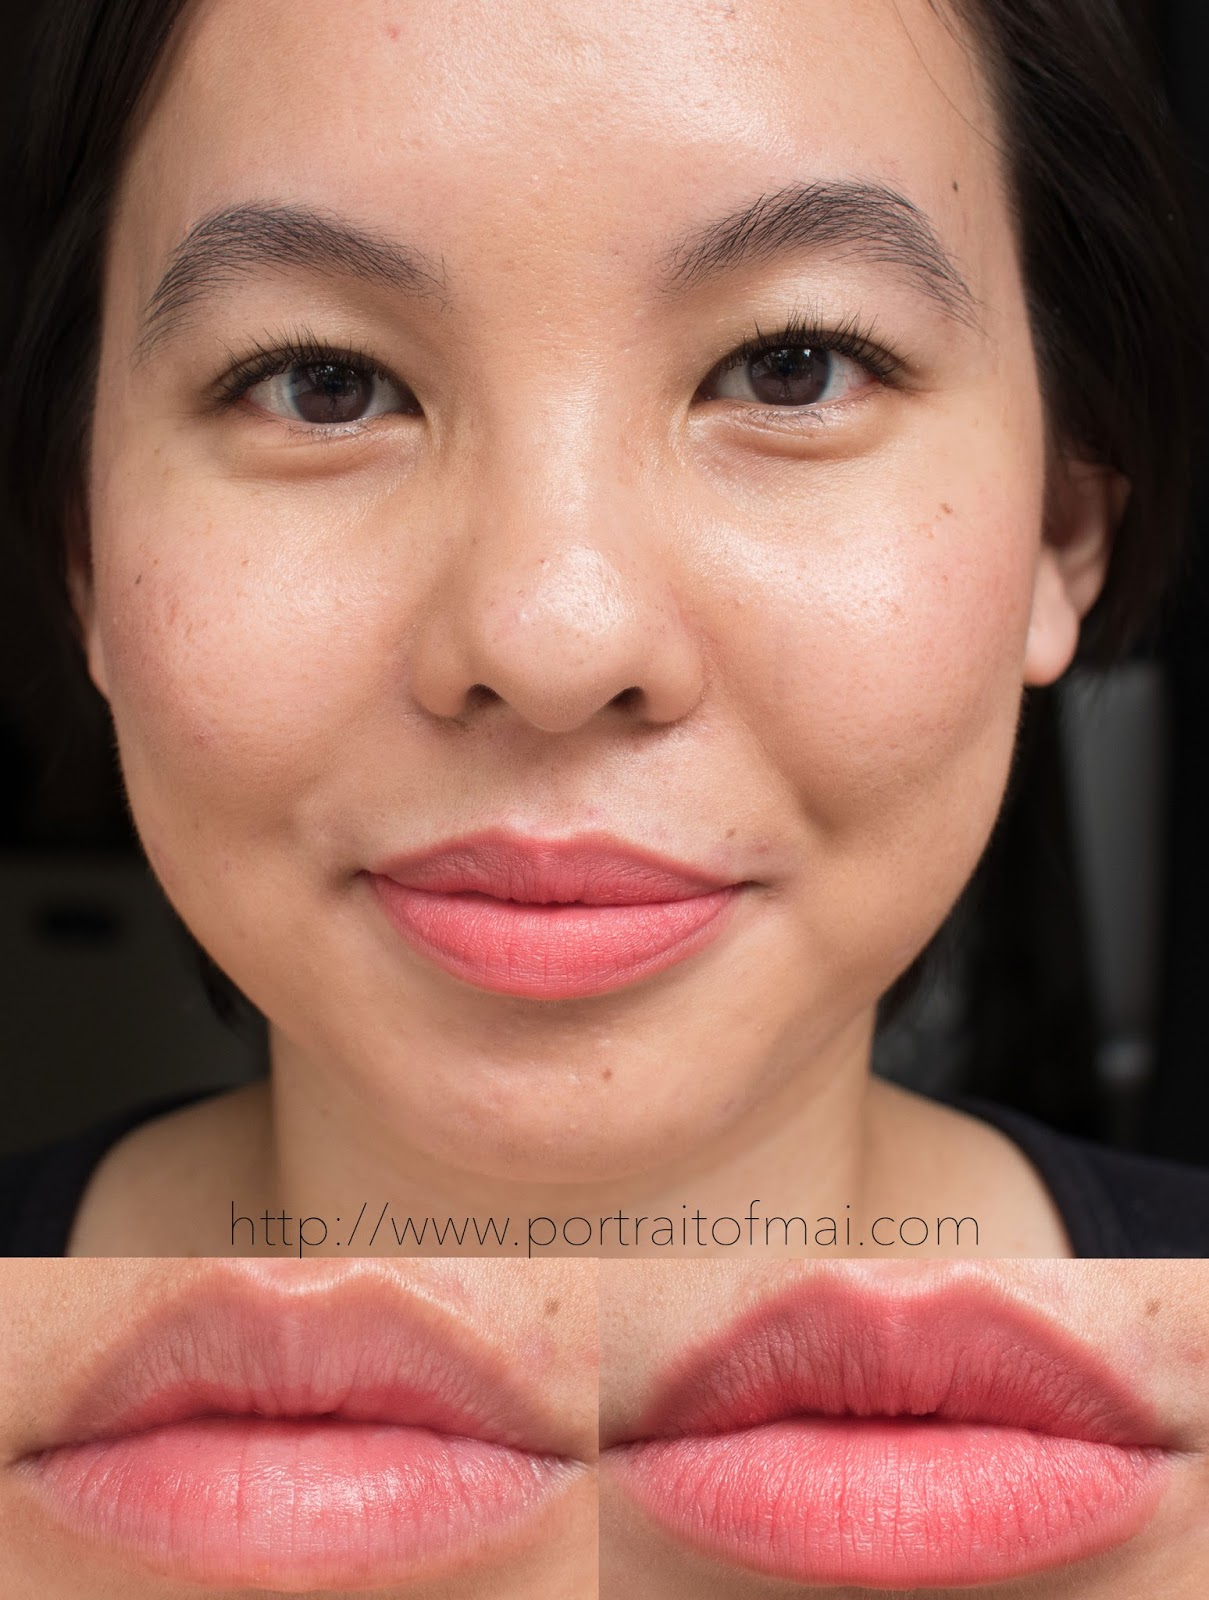 Colourpop Blotted Lip Vs Glossier Generation G Lipstick